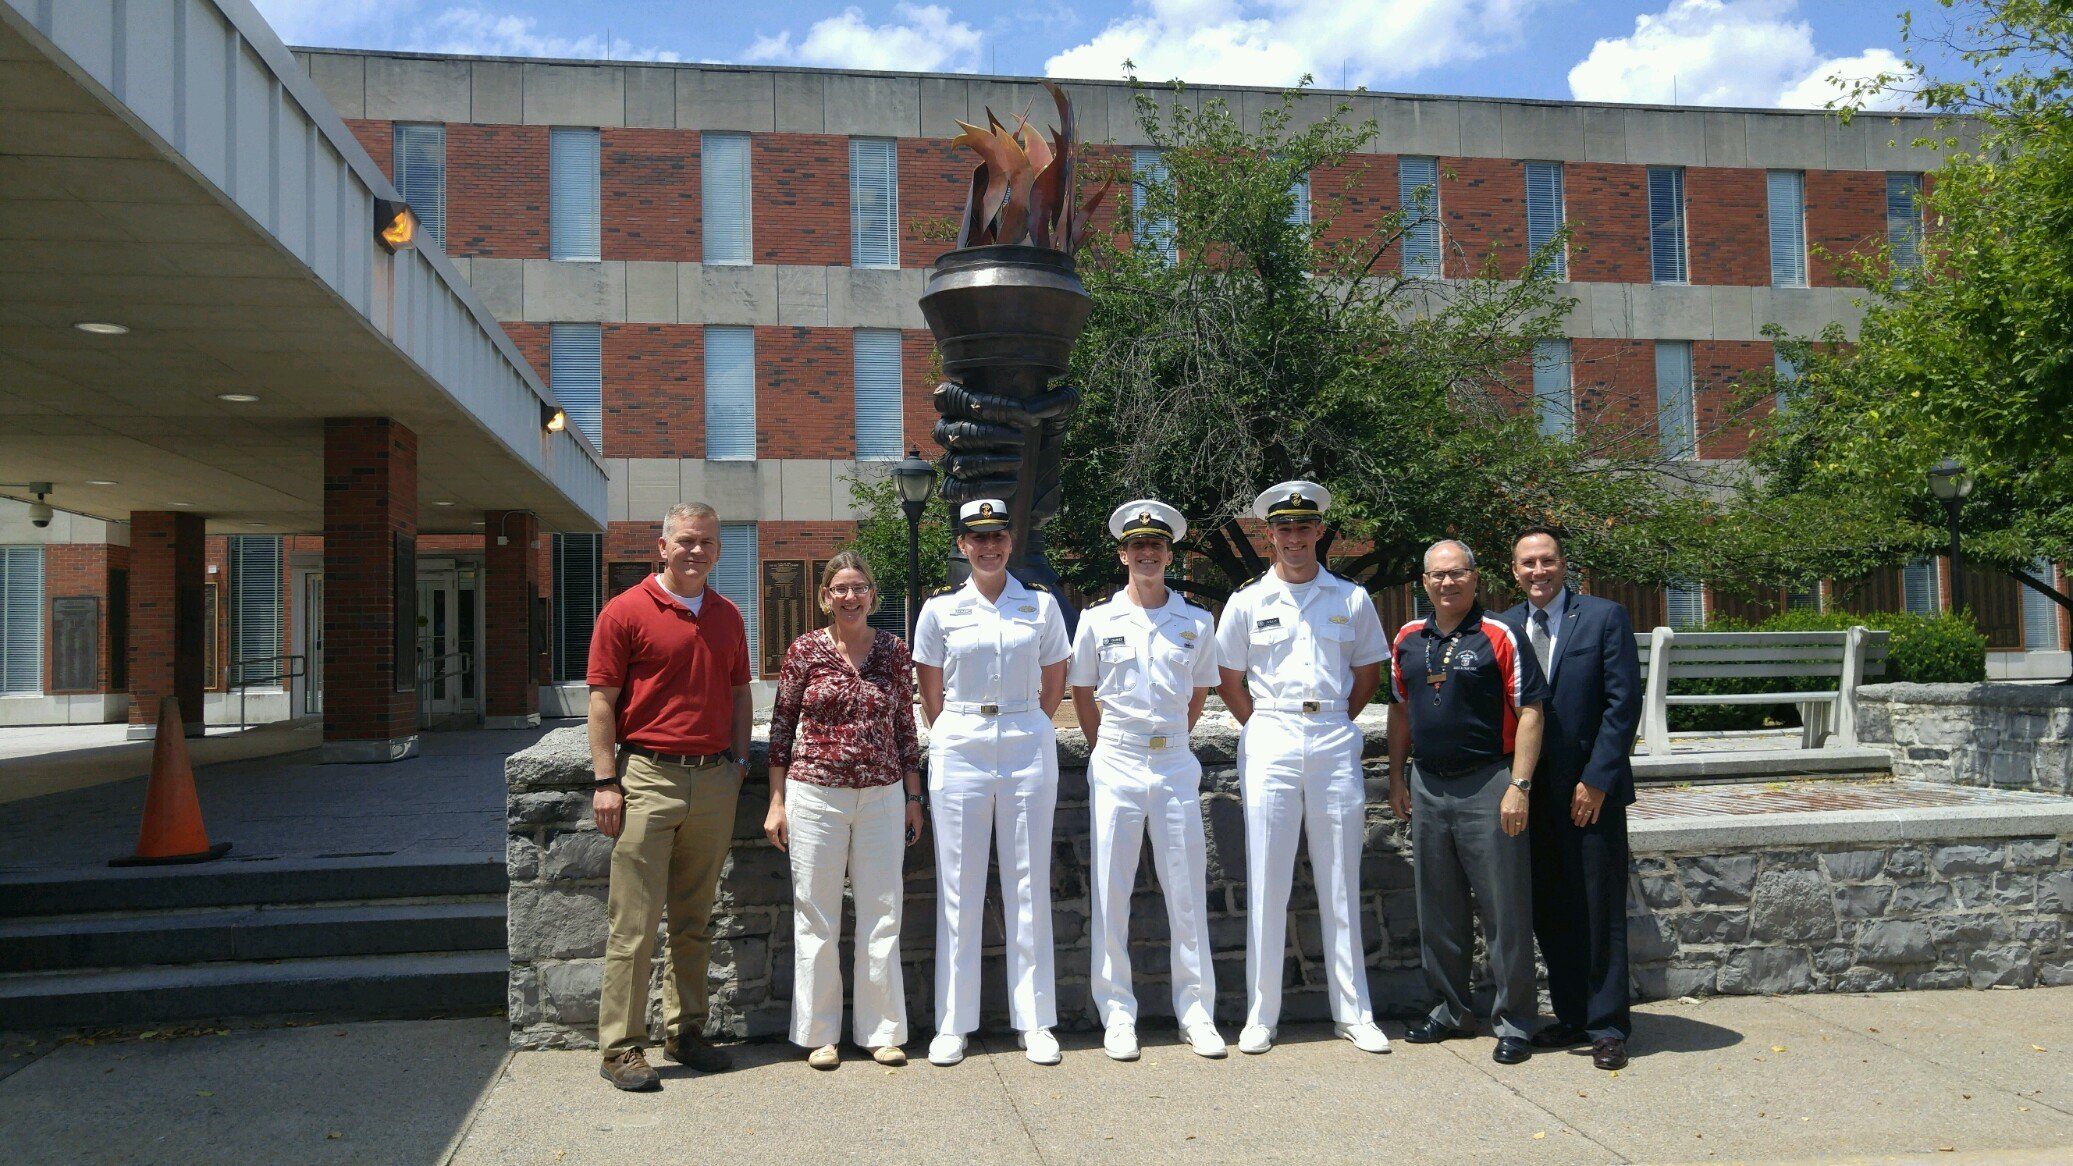 USAWC Prof. Driver, USMMA Prof. Ms. Speelman, Midshipmen Gathy, Gains and Welch, USAWC Prof. Gellert and S.VP. Glass at the U.S Army War College, Carlisle, PA